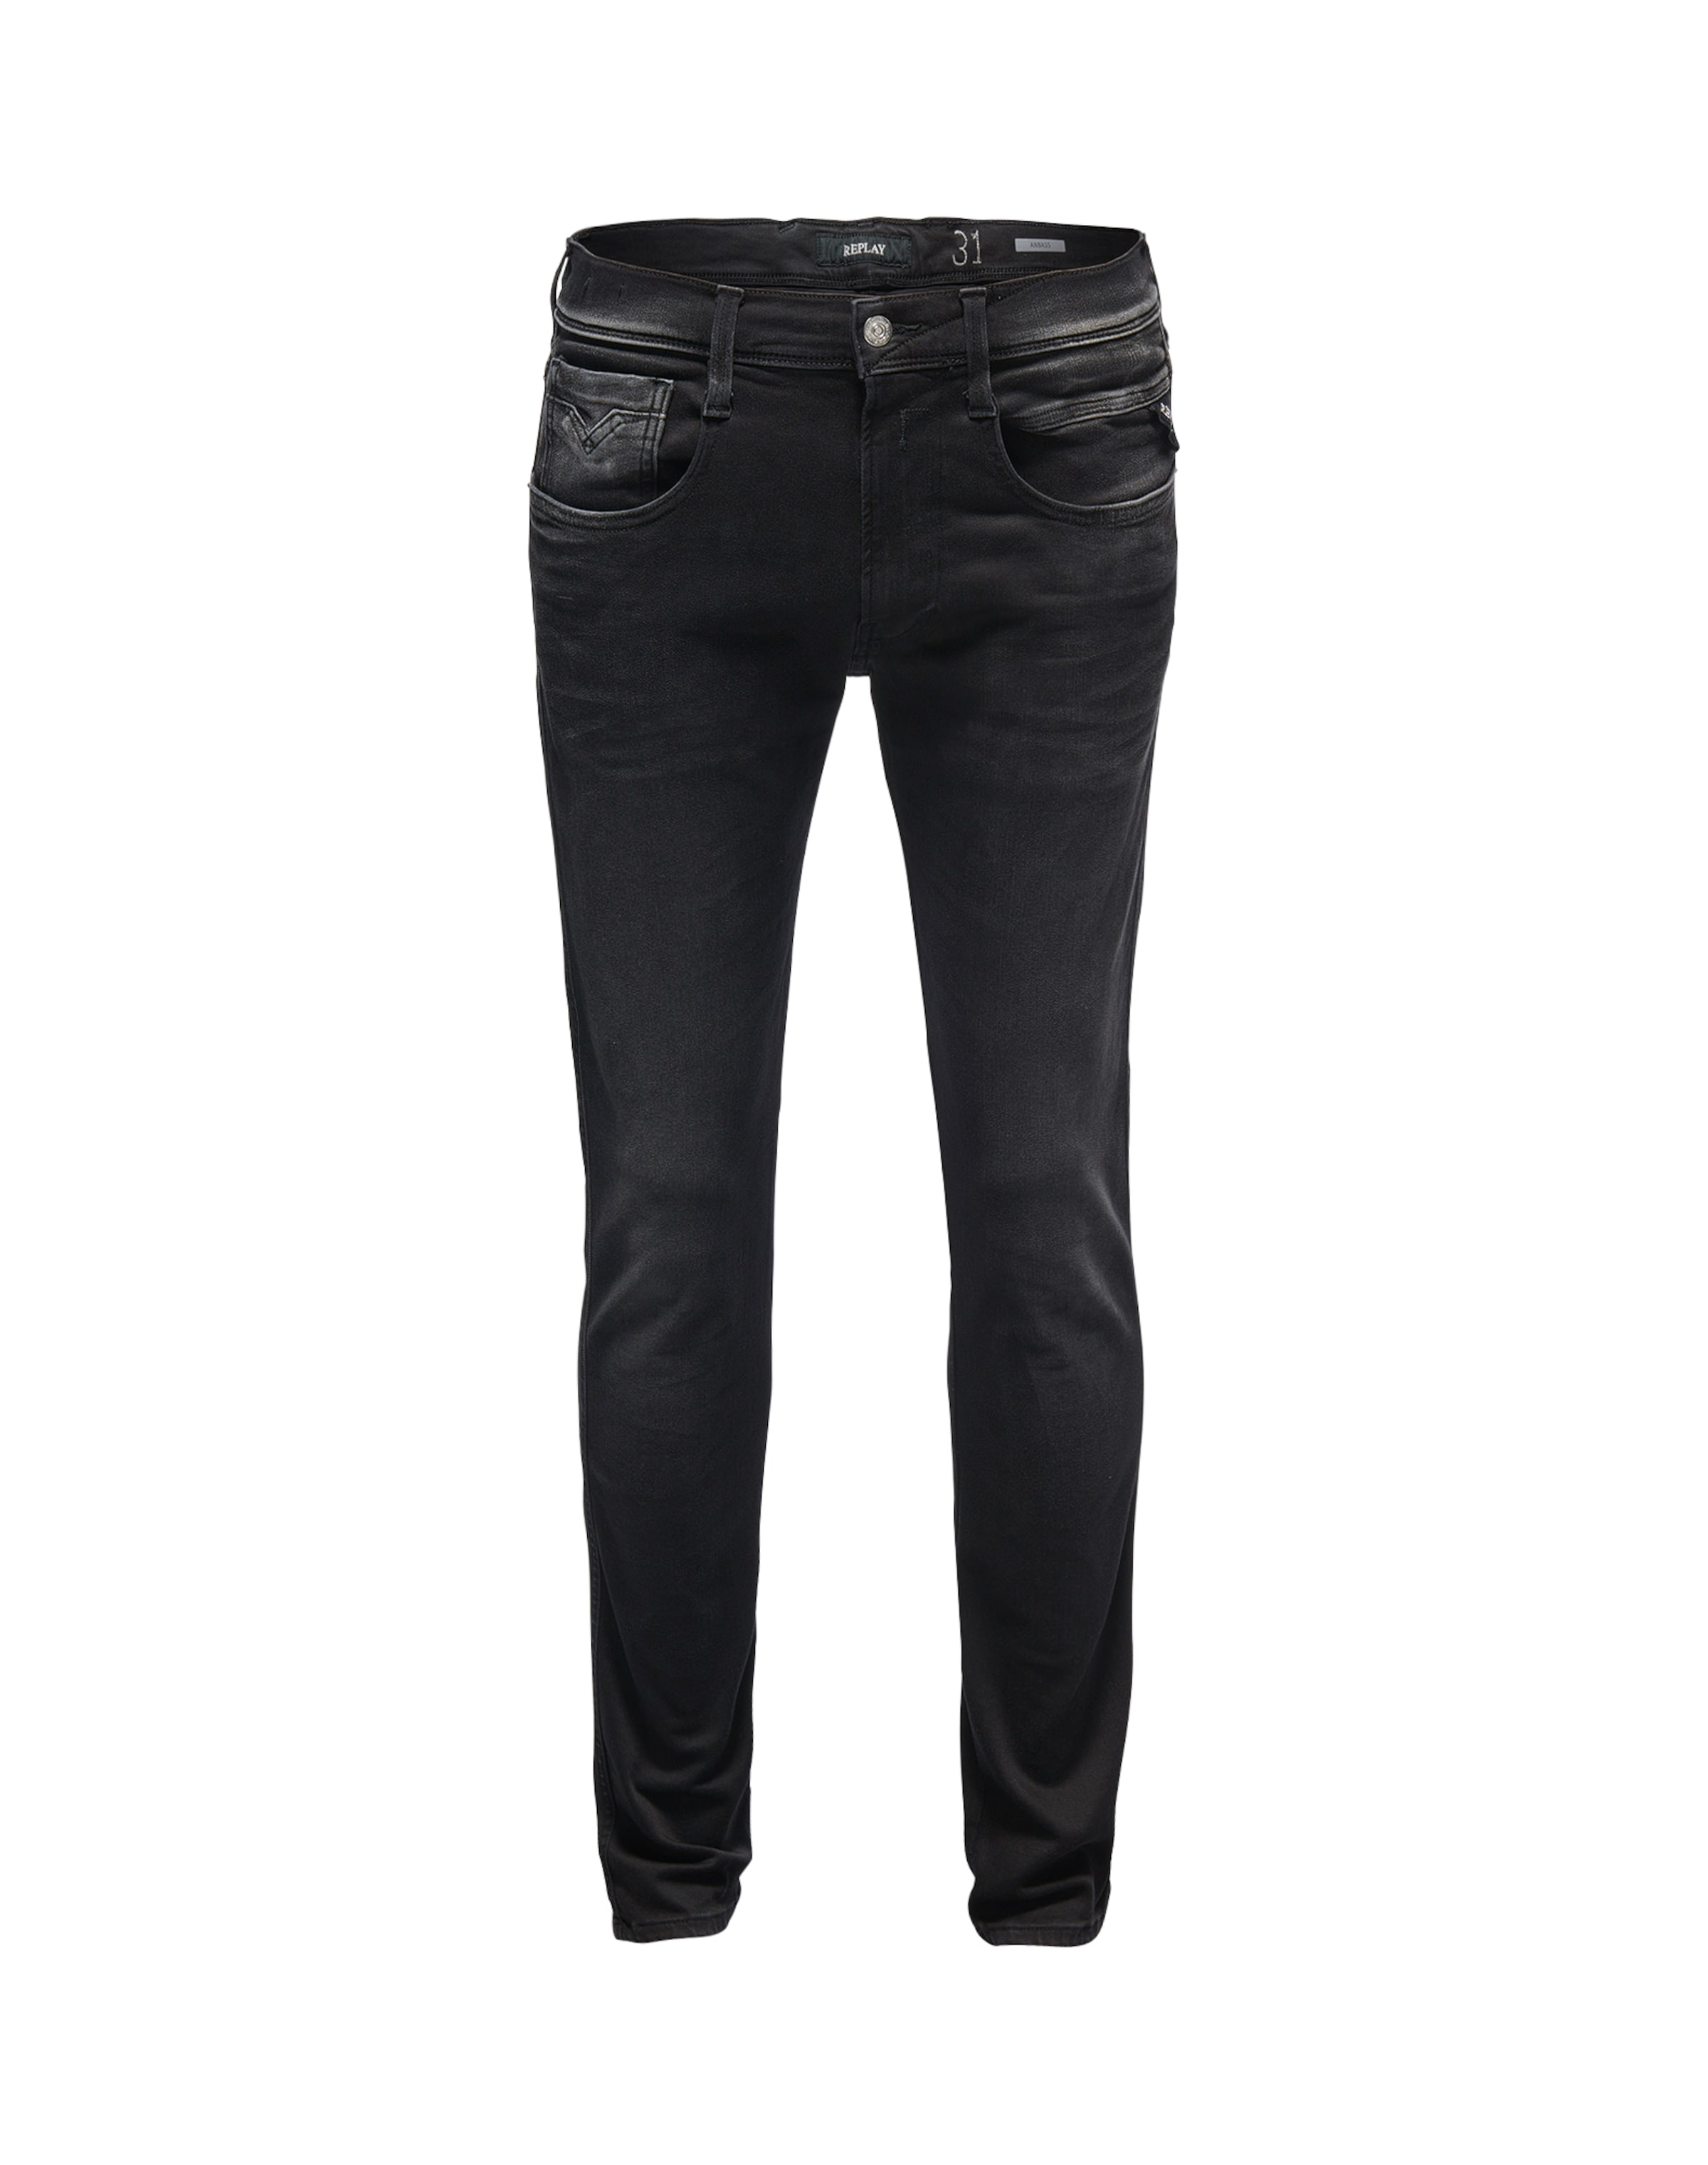 Noir Jean Replay En Denim 'anbass' xWrCedBo